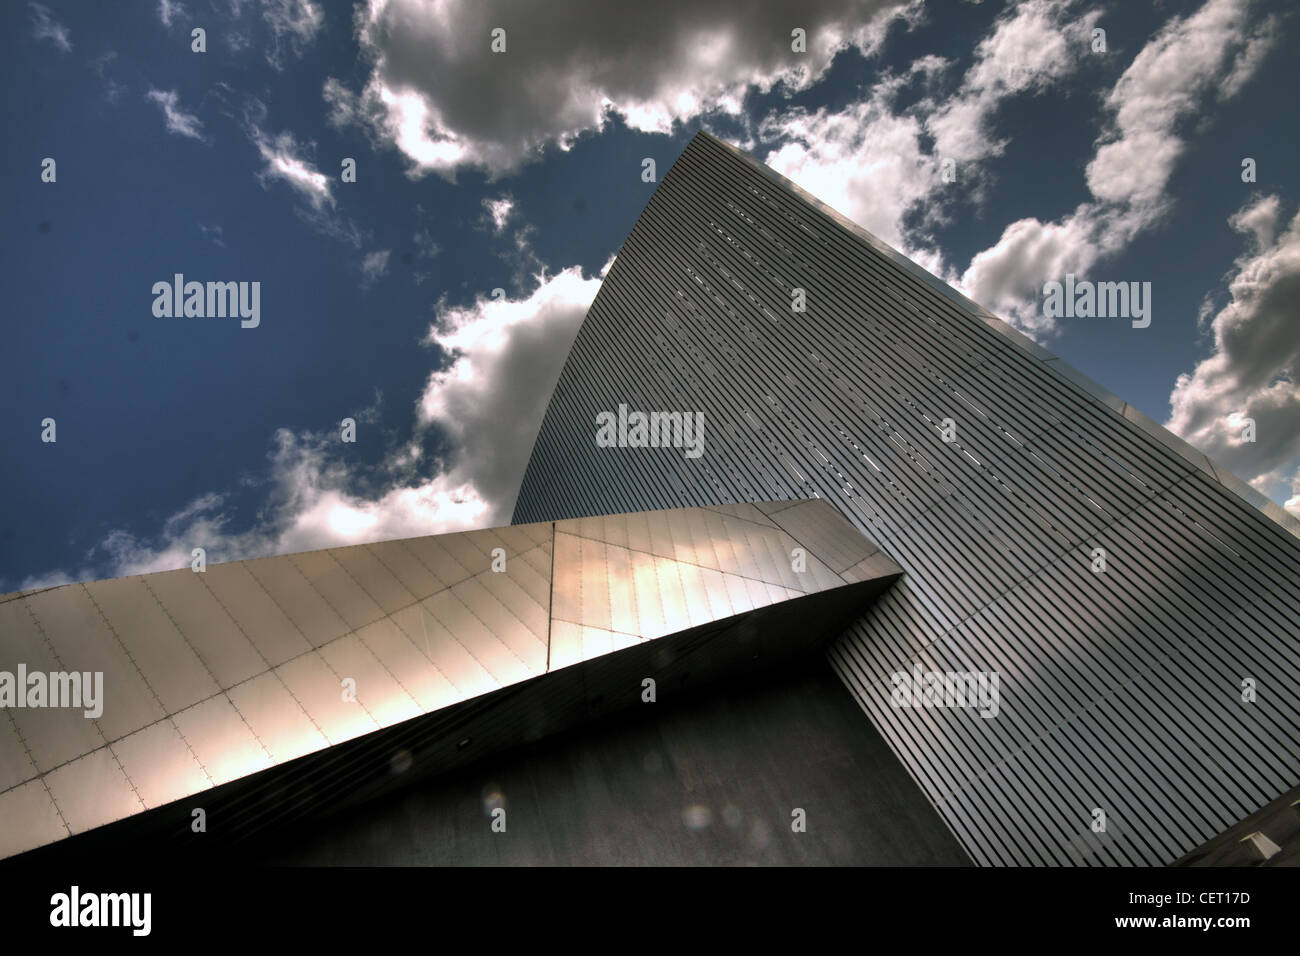 Imperial,War,Museum,North,Abstract,Salford,Quay,Manchester,sky,dramatic,clouds,looking,upwards,up,Berlin,based,architect,Daniel,Libeskind,gotonysmith,Quays,England,UK,United,Kingdom,GB,Great,Britain,gotonysmith,Buy Pictures of,Buy Images Of